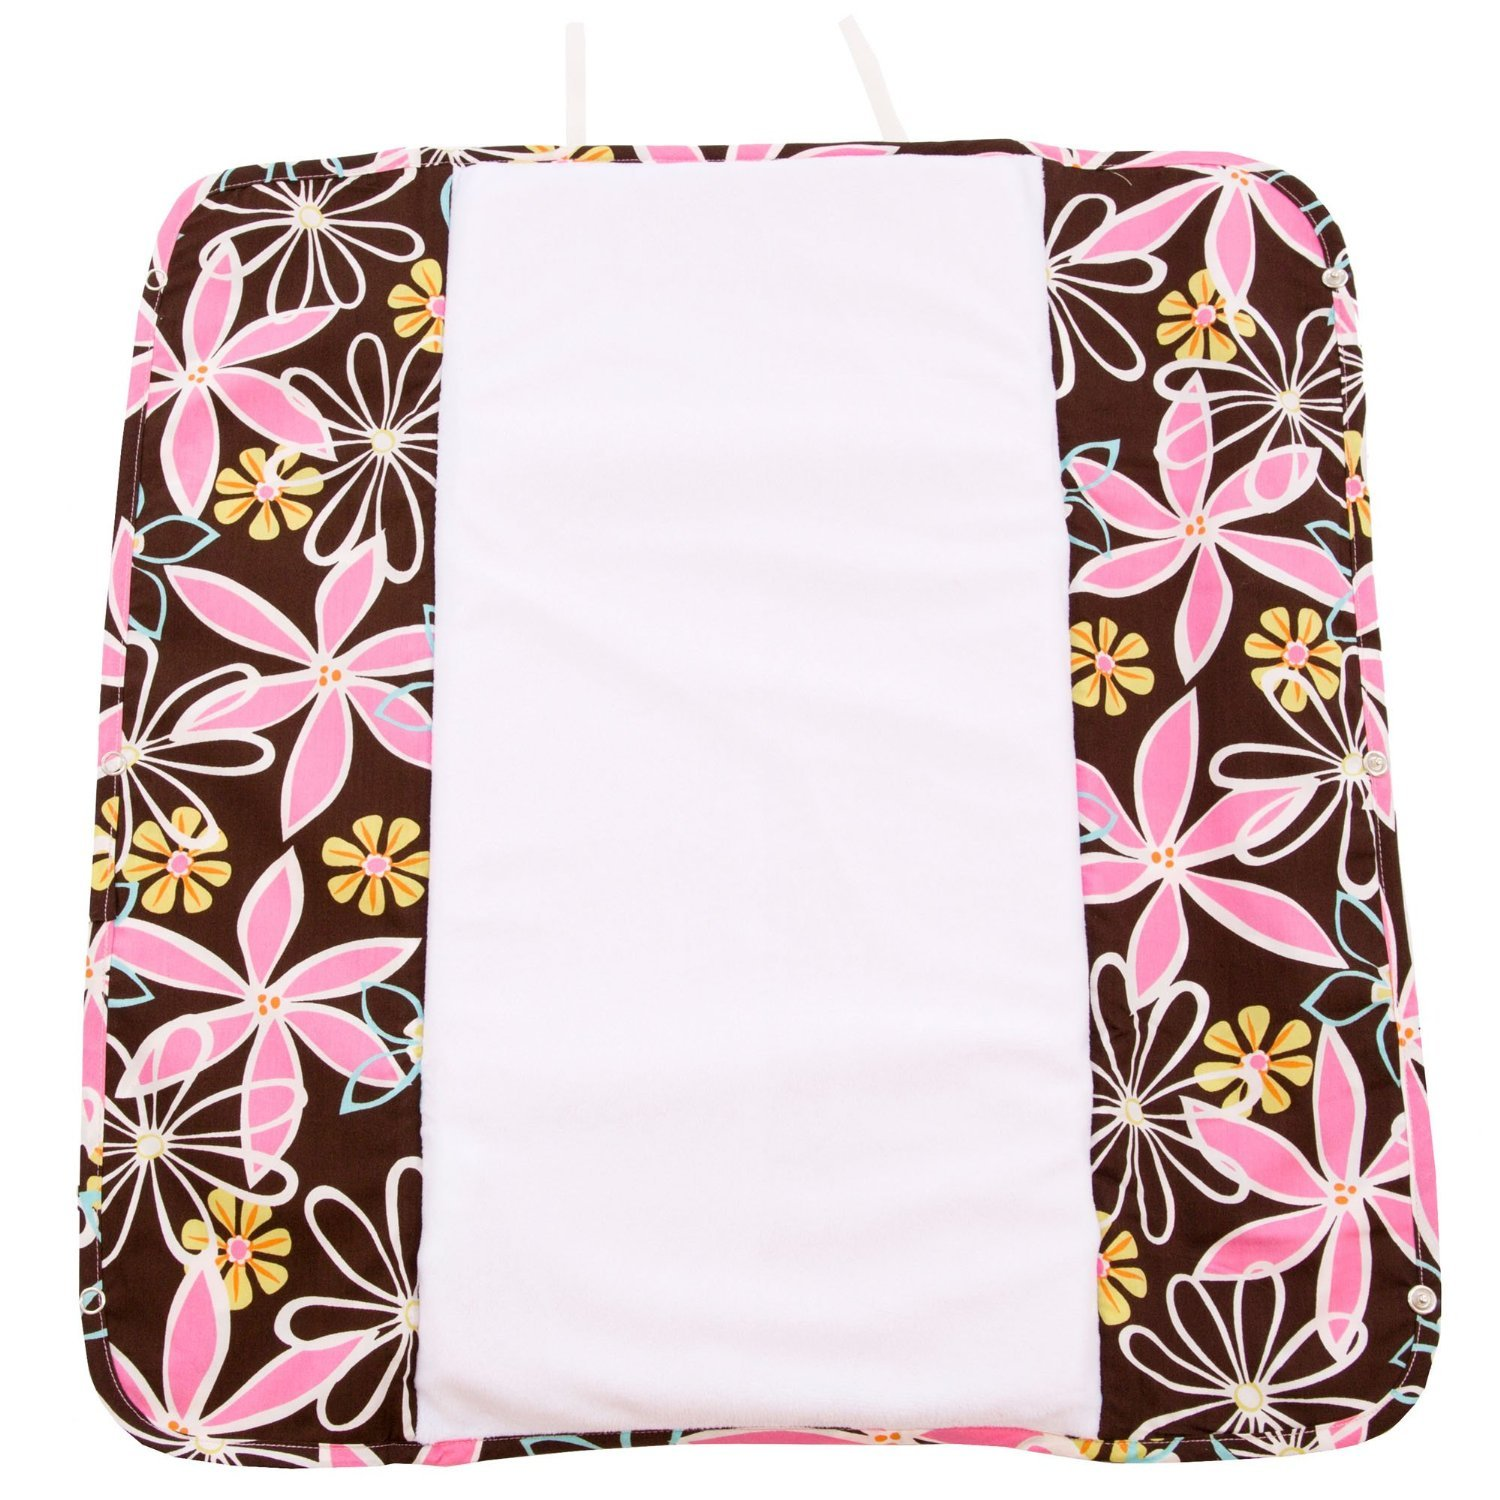 Image of Ah Goo Baby Plush Pad Changing Pad with Memory Foam - Retro Daisy